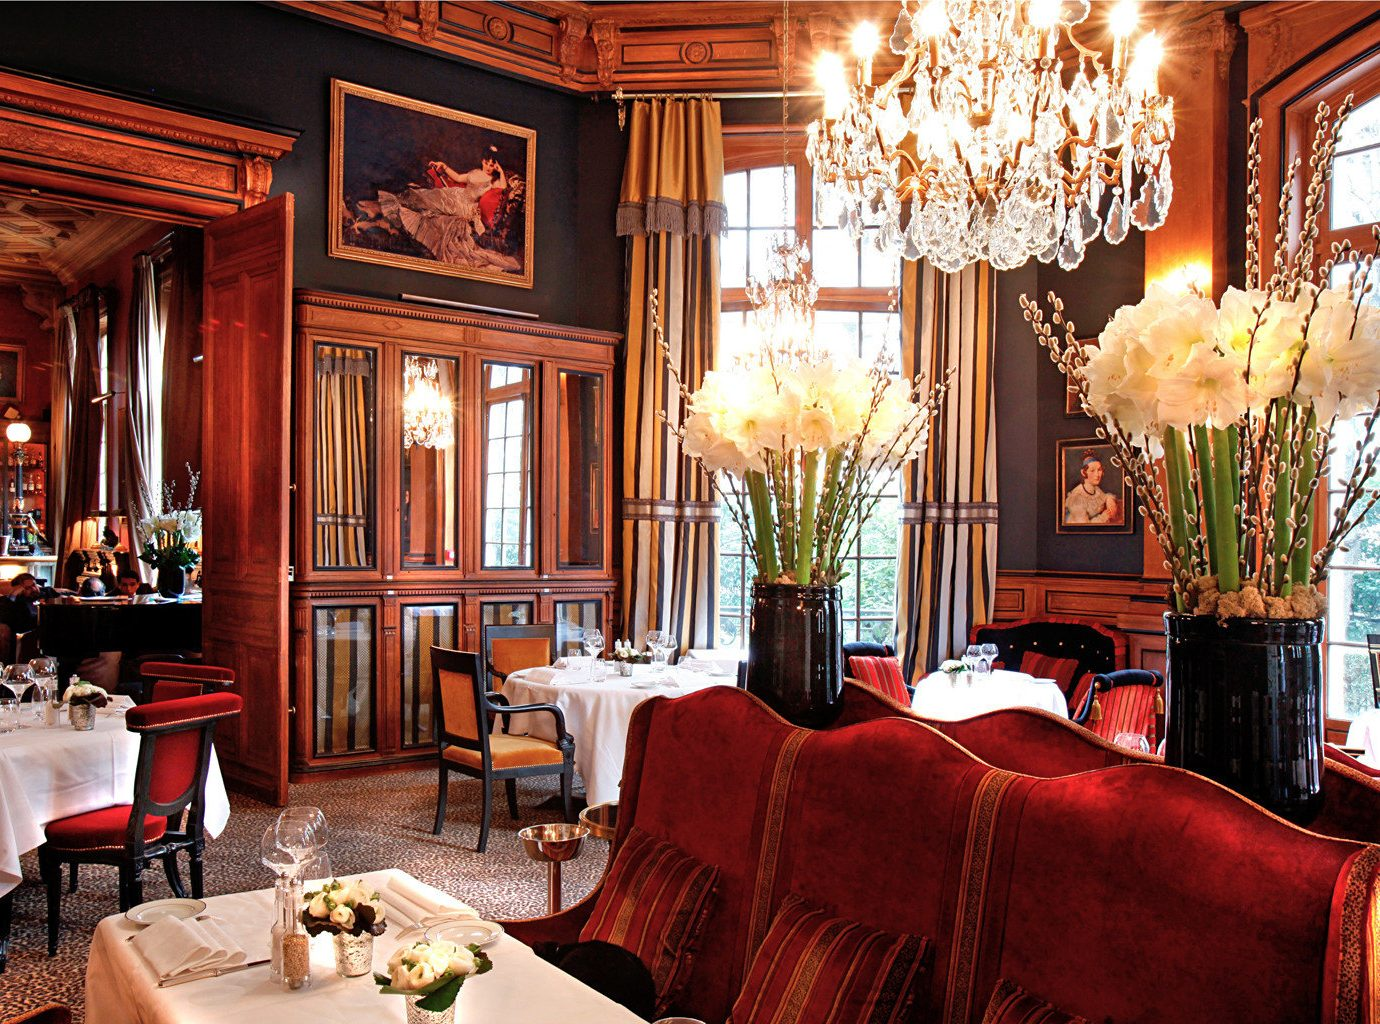 City Dining Drink Eat Elegant France Historic Hotels Lounge Paris Romantic indoor room window Living sofa chair restaurant ceiling dining room estate meal decorated red interior design home furniture function hall Bar nice living room mansion palace area leather